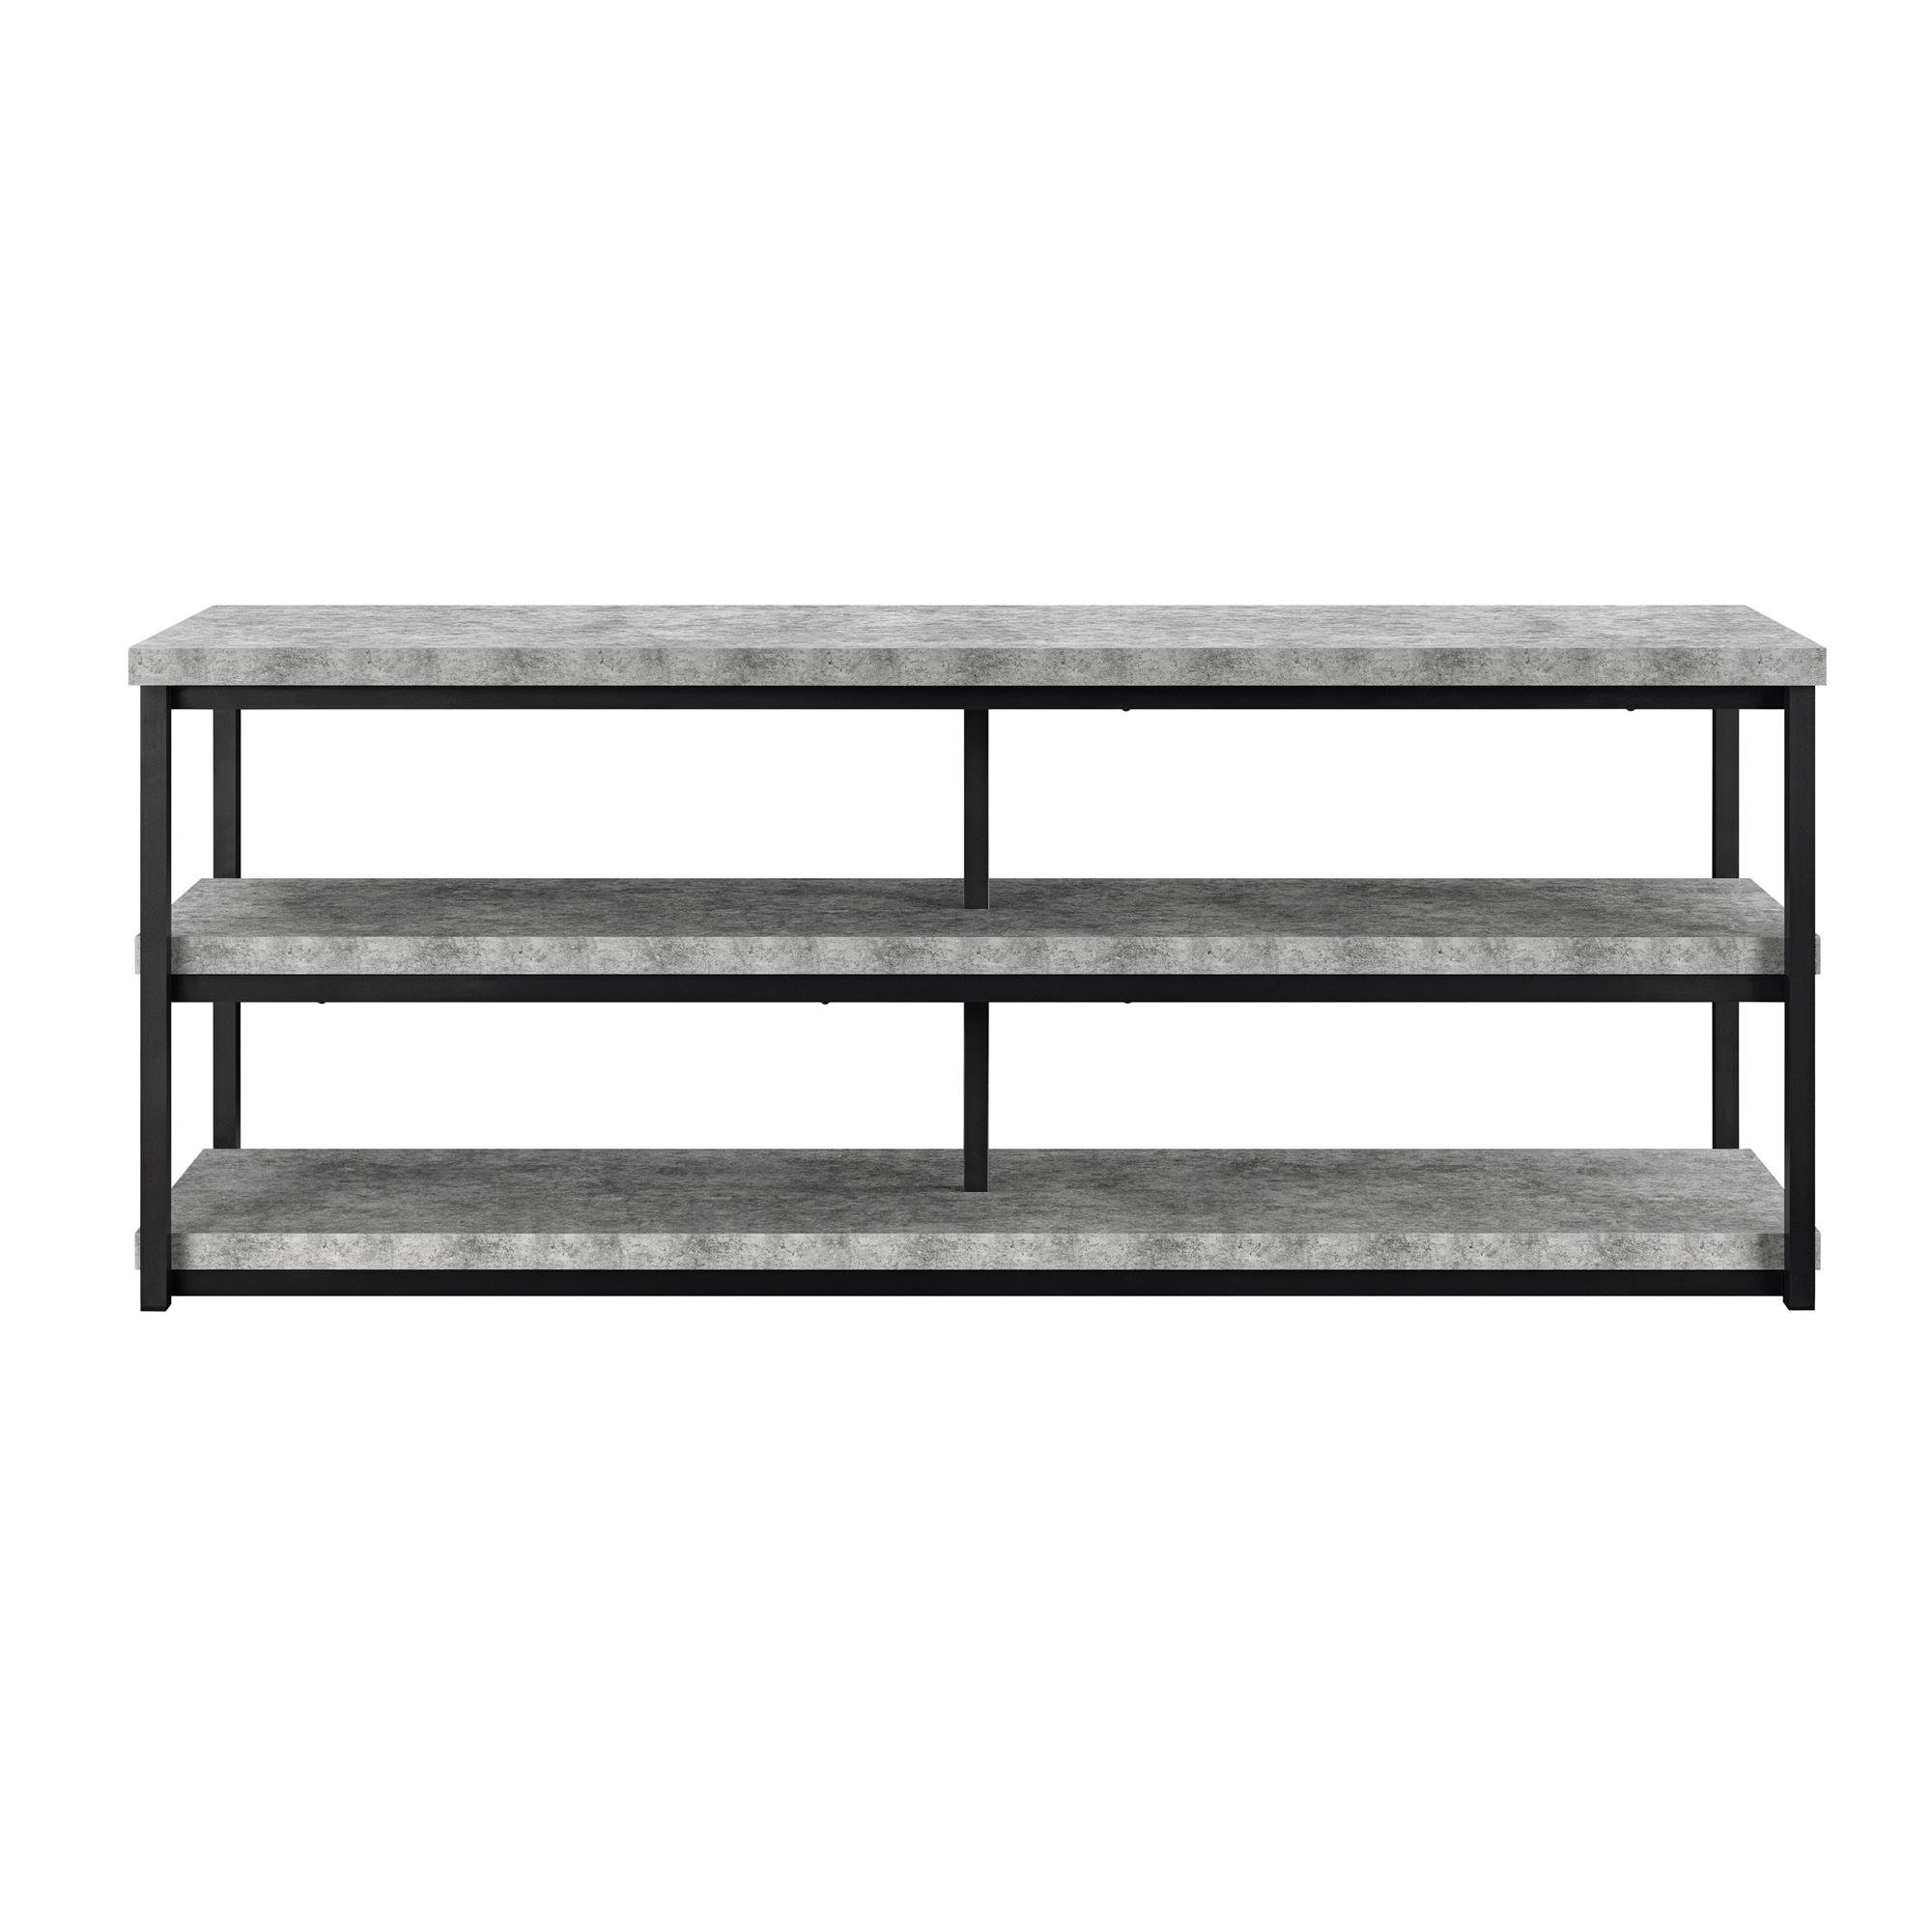 Ameriwood Home Ashlar TV Stand for TVs up to 65'', Concrete Gray by Ameriwood Home